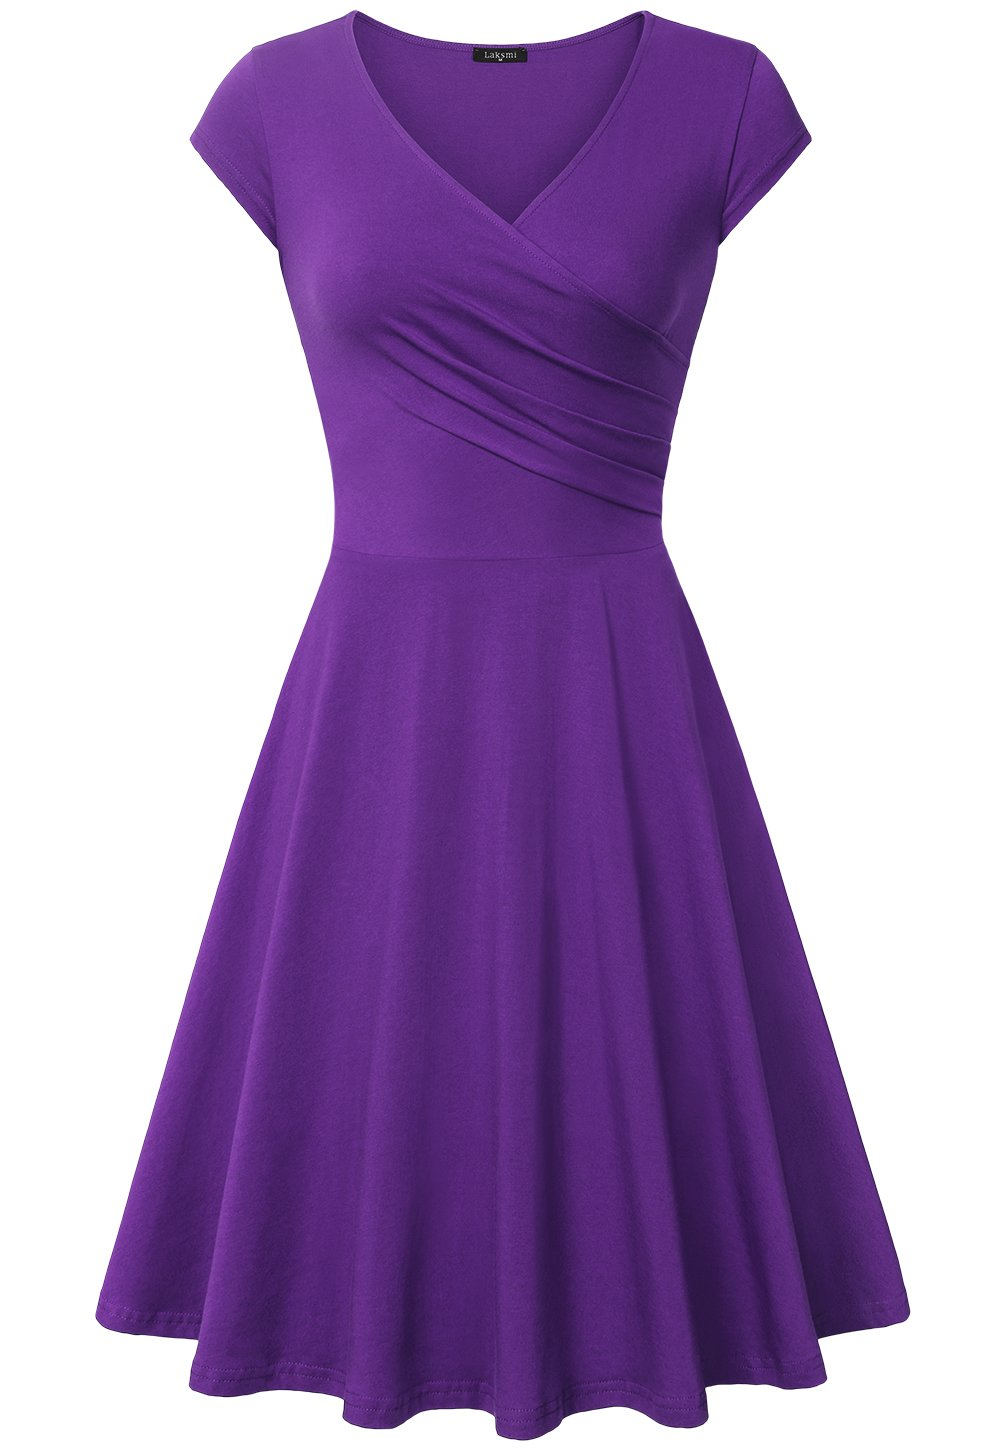 Laksmi Sundress, Women's Wear to Work Pleated Bodycon Dress,Medium Purple